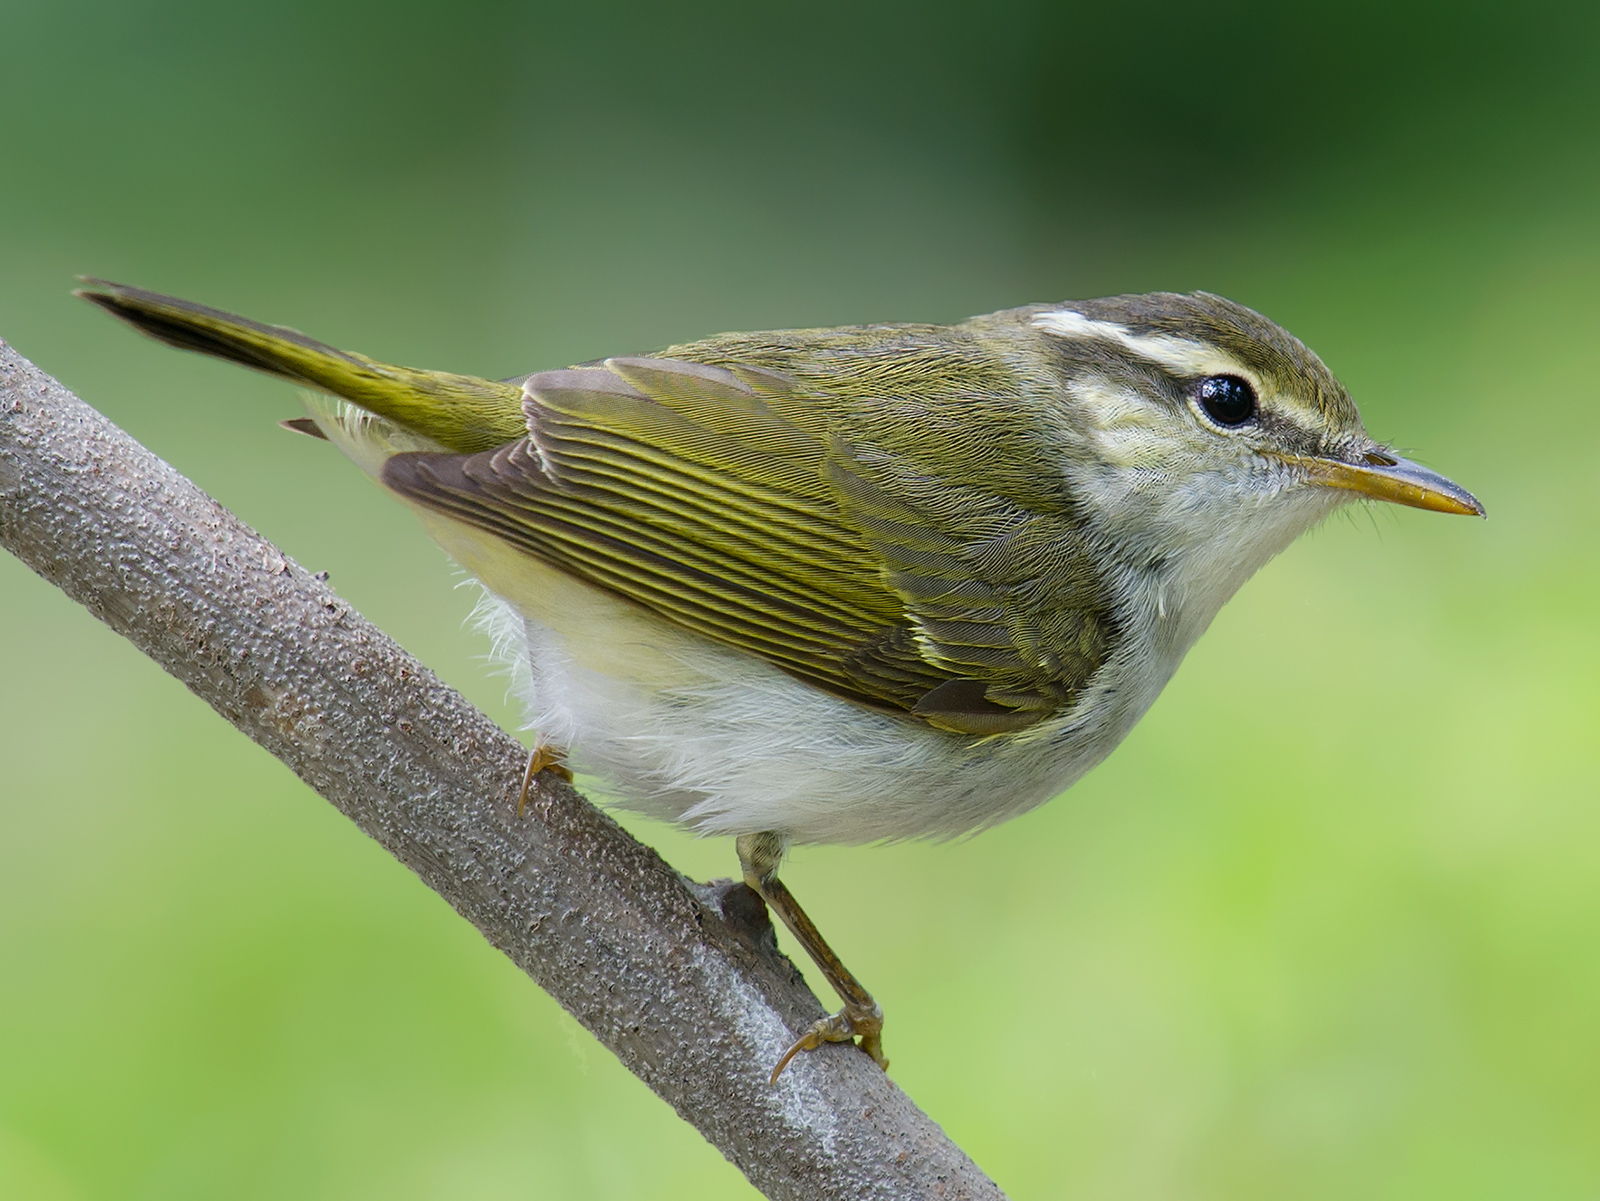 Eastern Crowned Warbler, 14 May 2014, Yangkou. Craig Brelsford.